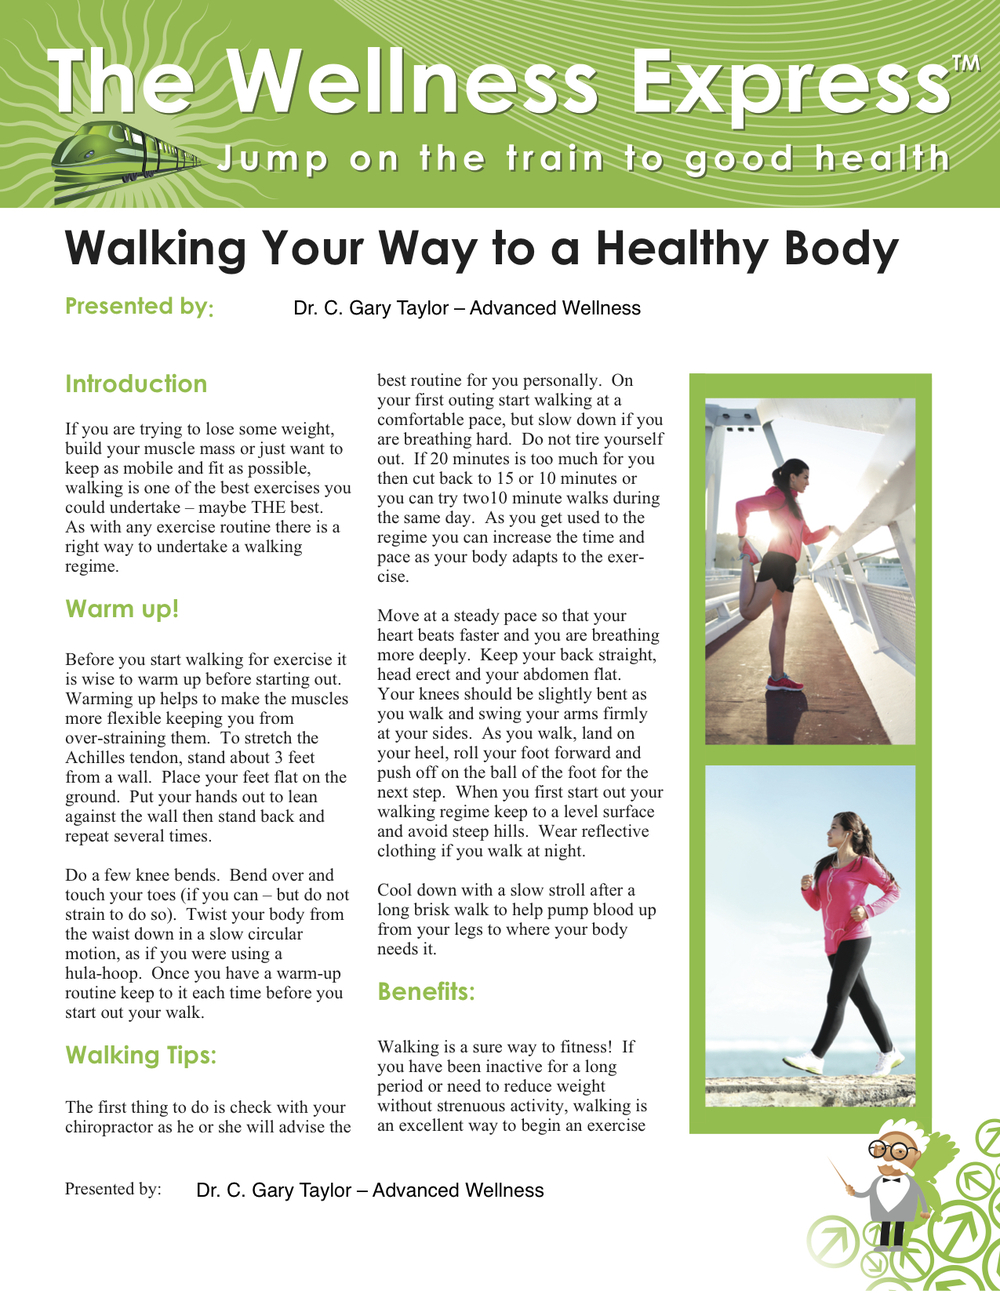 Weekly Newsletter: Walking Your Way to a Healthy Body